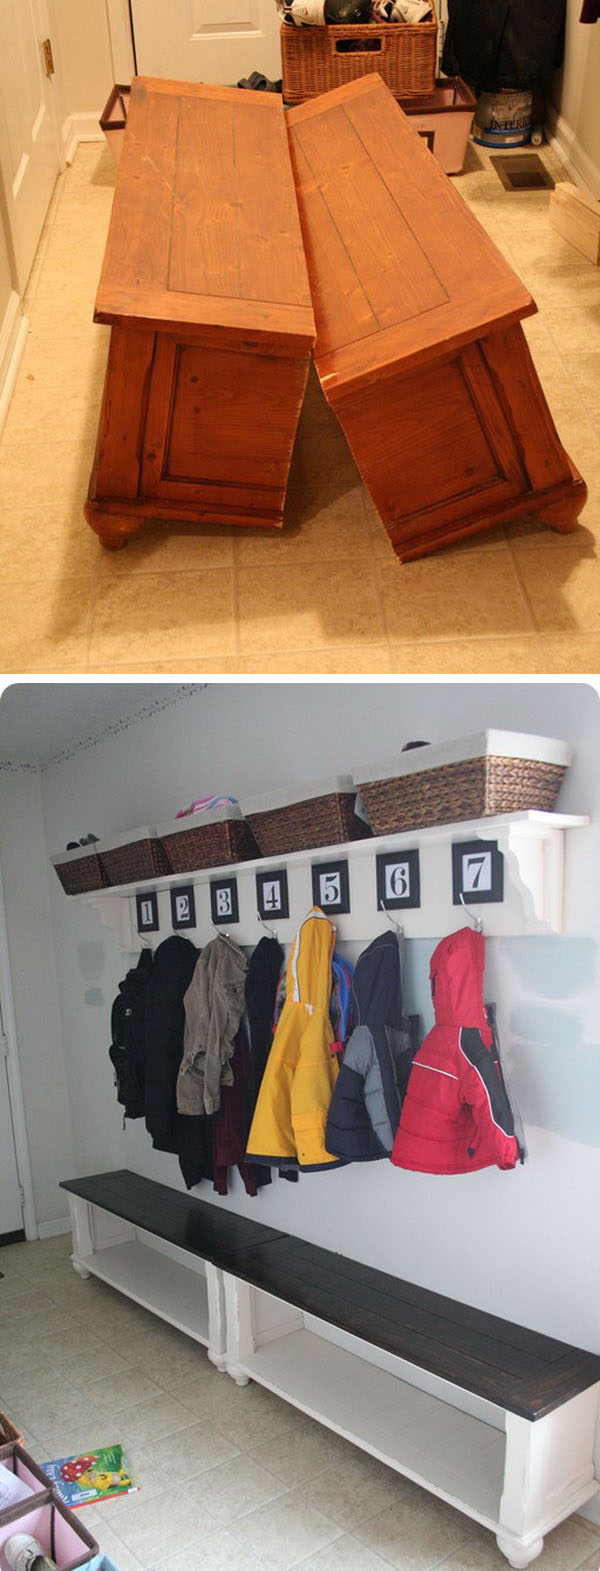 Turn an Old Coffee Table to a Mudroom Bench.